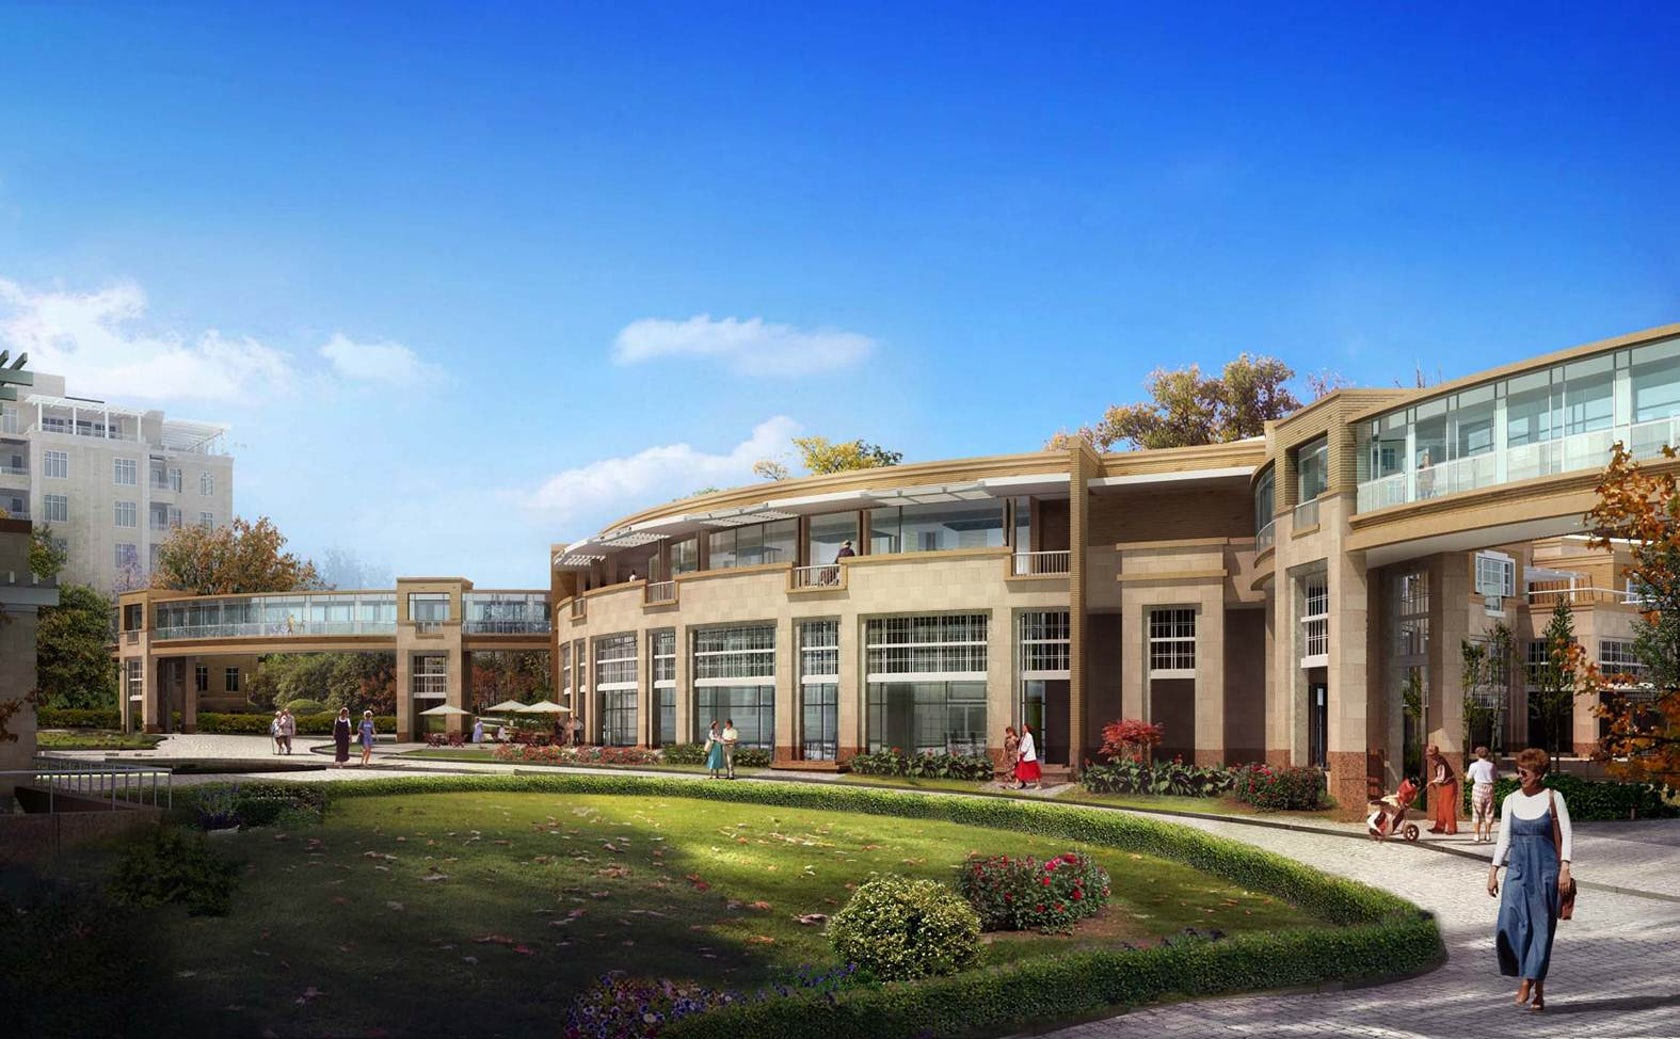 Sharon hills continuing care retirement center architizer for College street motors amherst ma